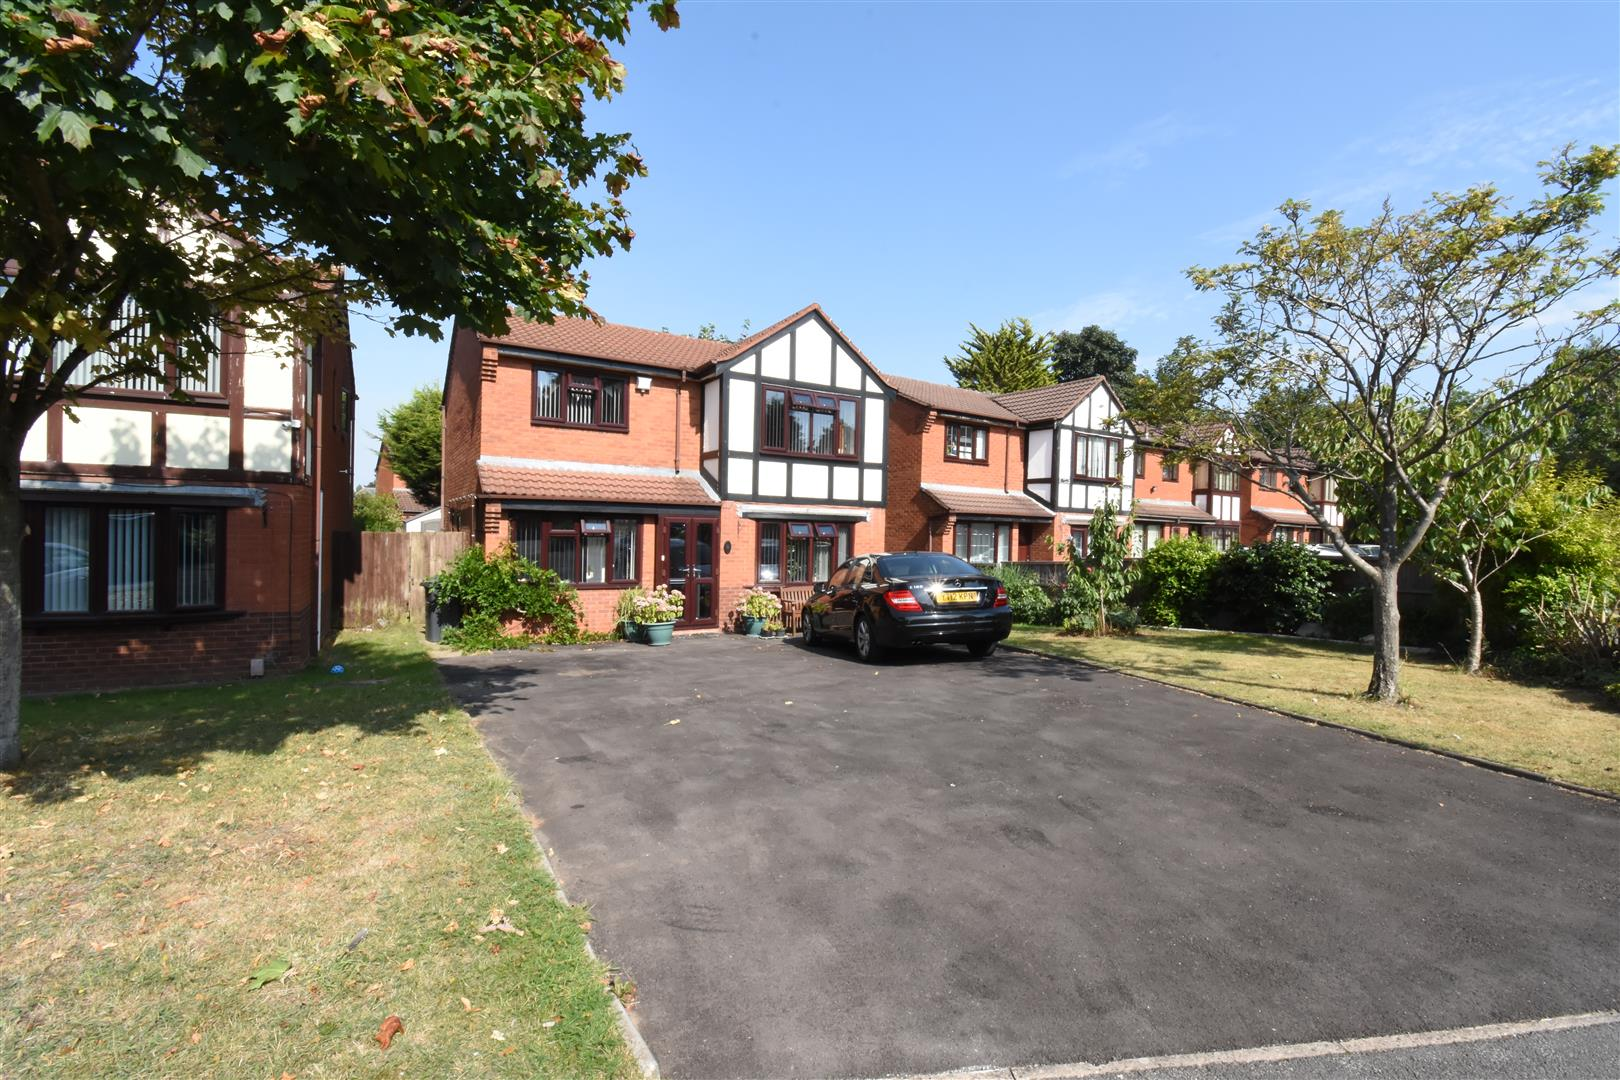 3 bed house for sale in Wilkinson Croft, Hodge Hill, Birmingham, B8